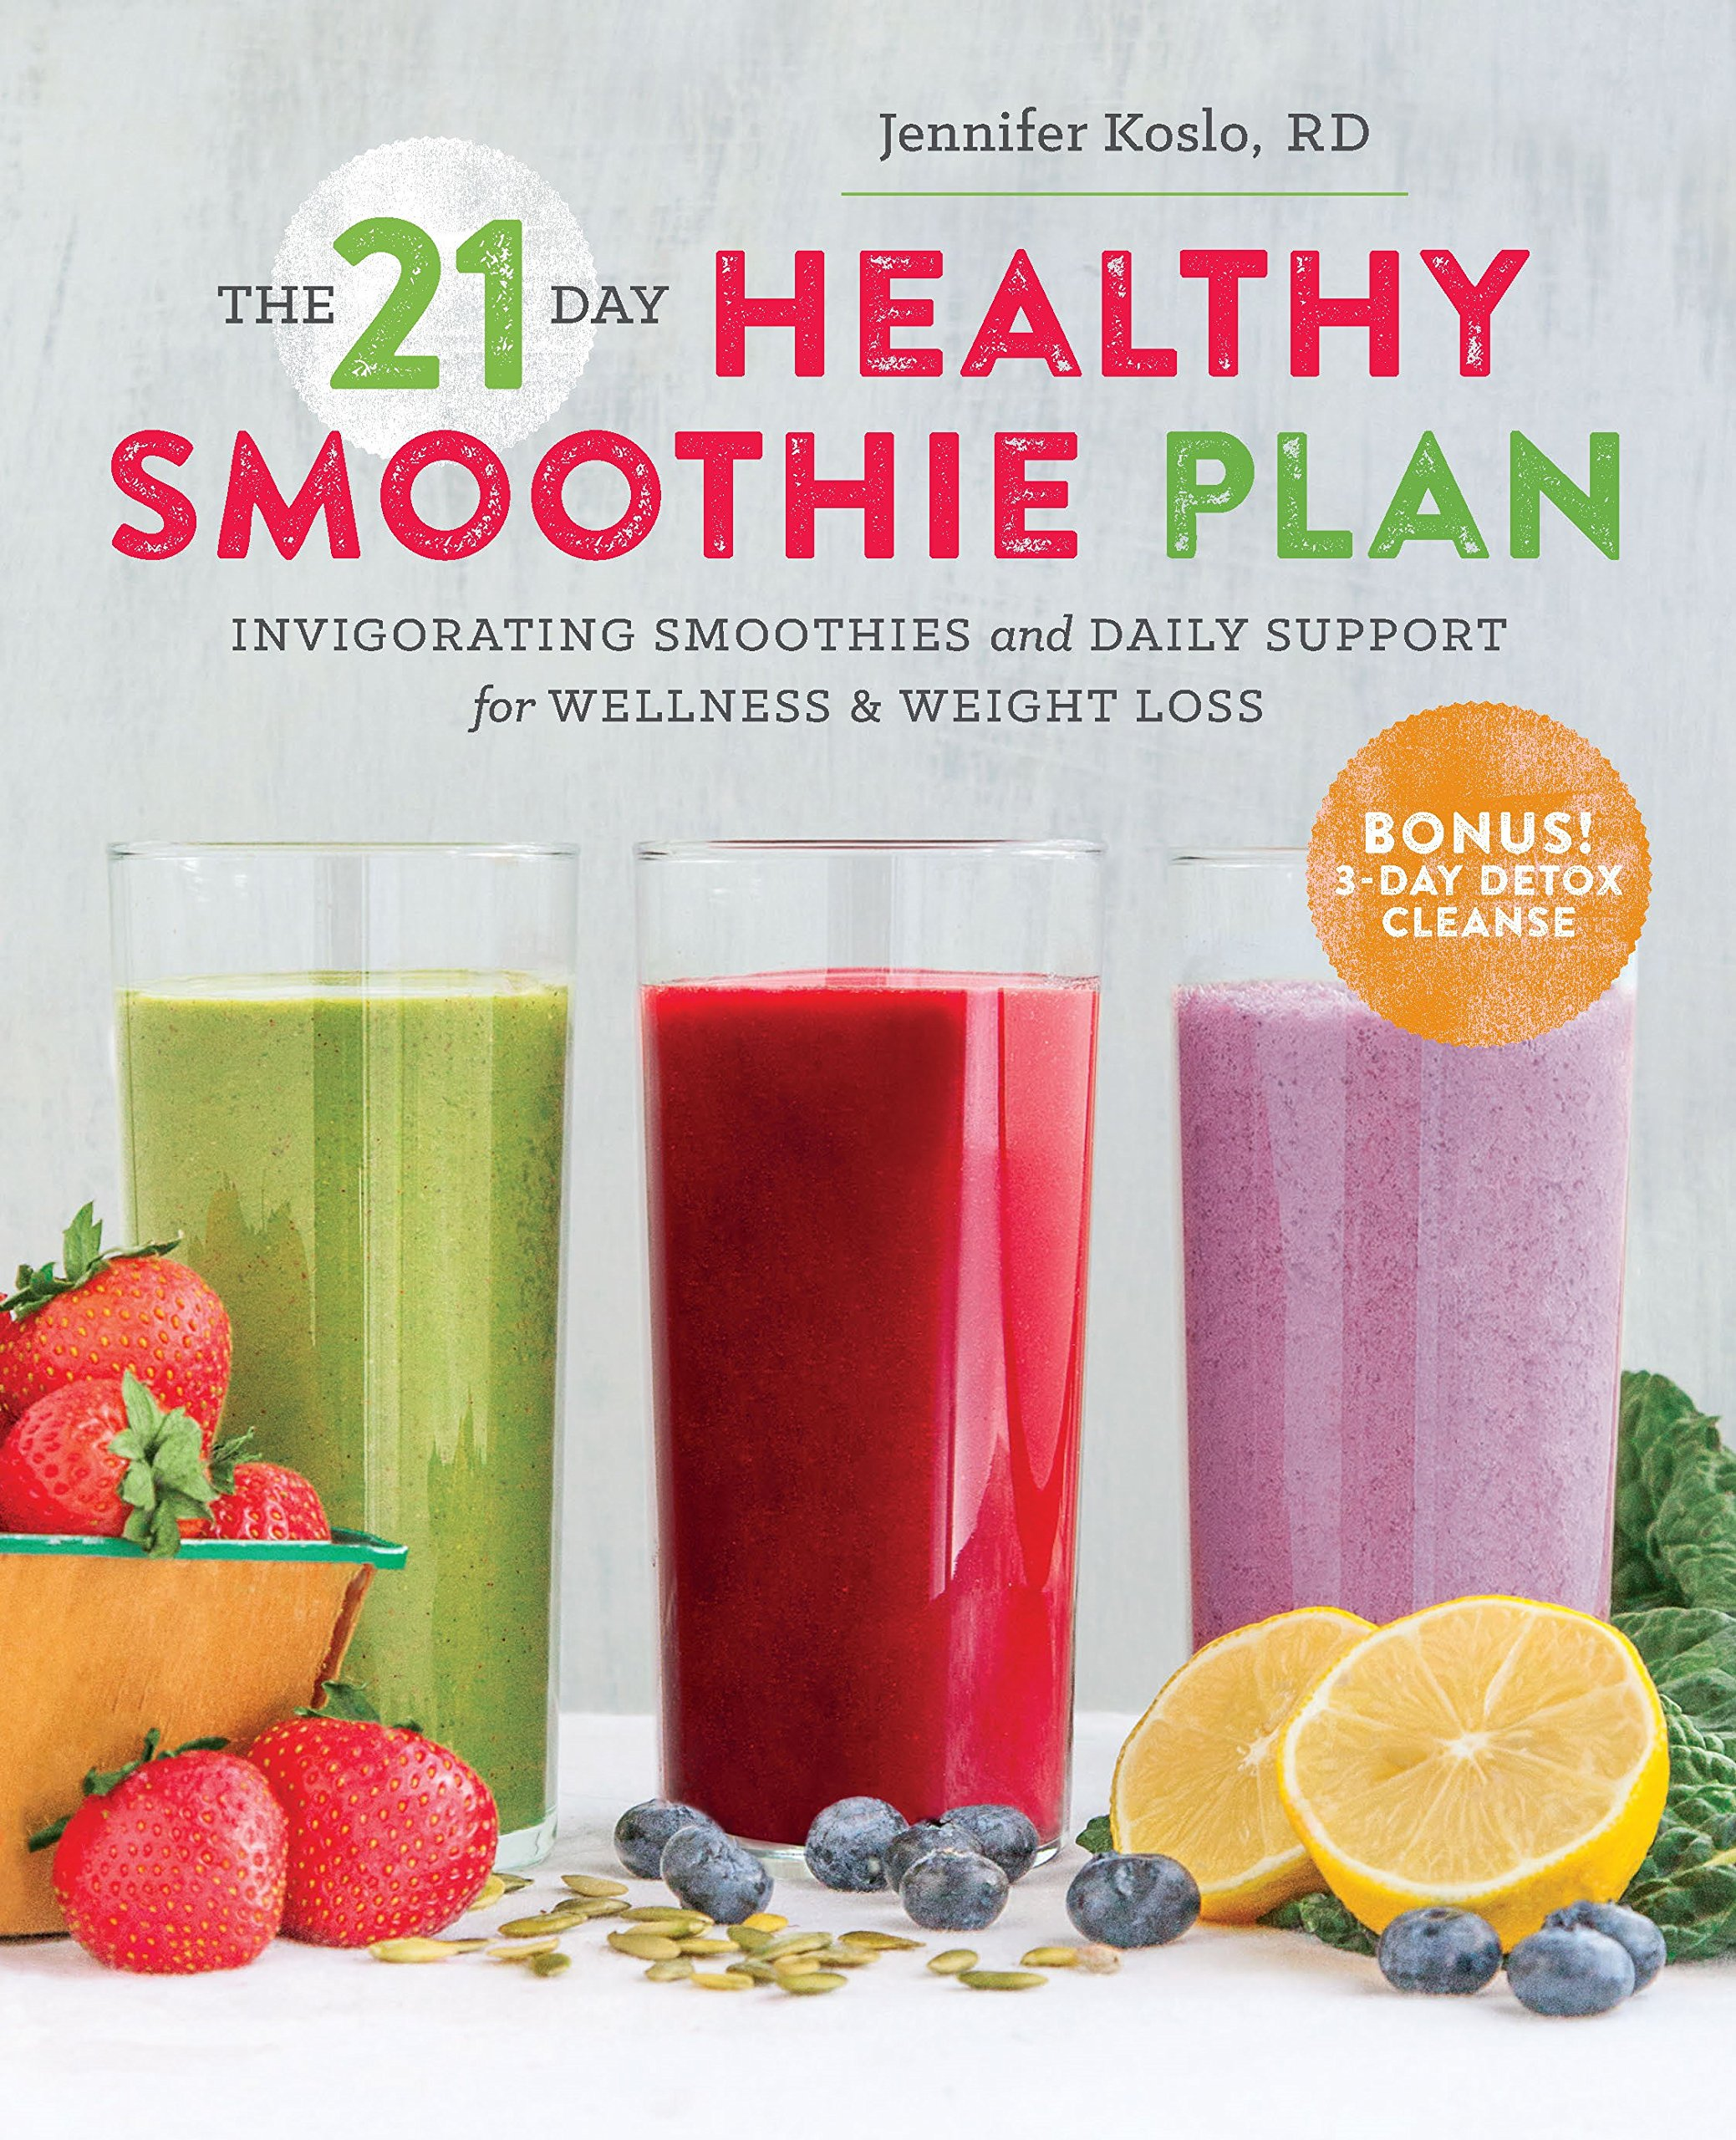 Amazon Com The 21 Day Healthy Smoothie Plan Invigorating Smoothies Daily Support For Wellness Weight Loss 9781623155292 Koslo Rd Jennifer Books